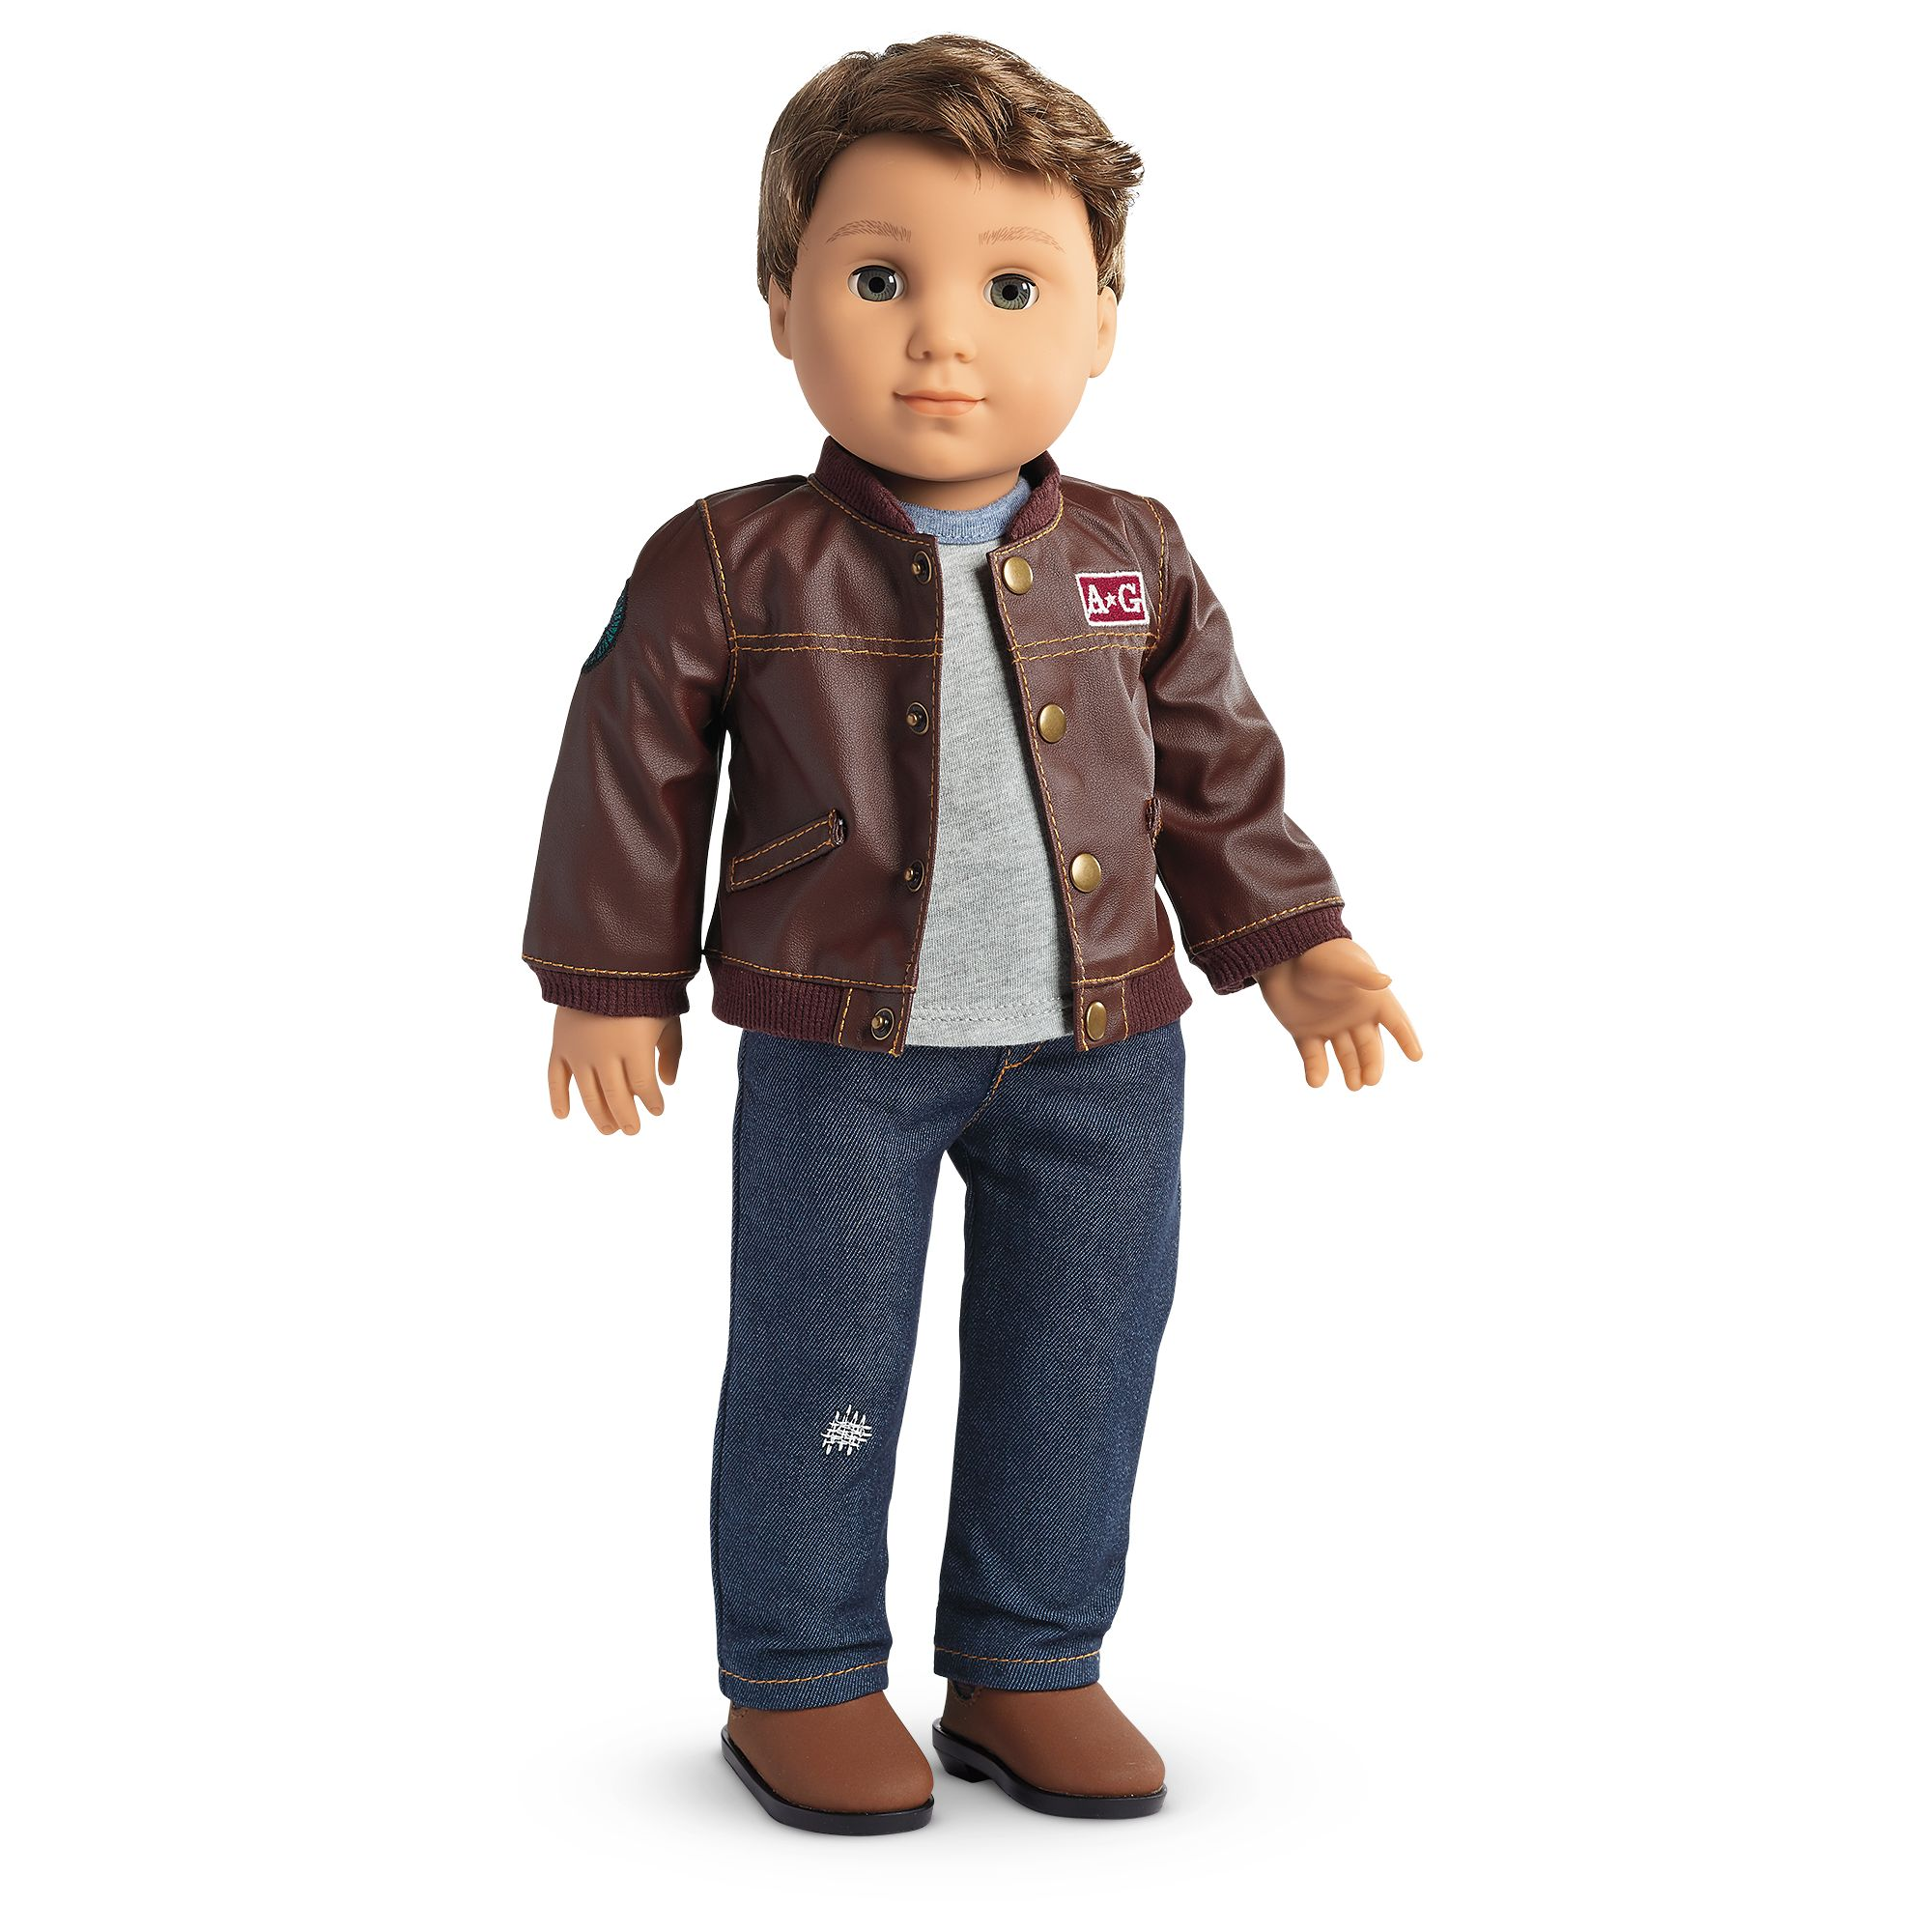 Logan S Performance Outfit American Girl Wiki Fandom